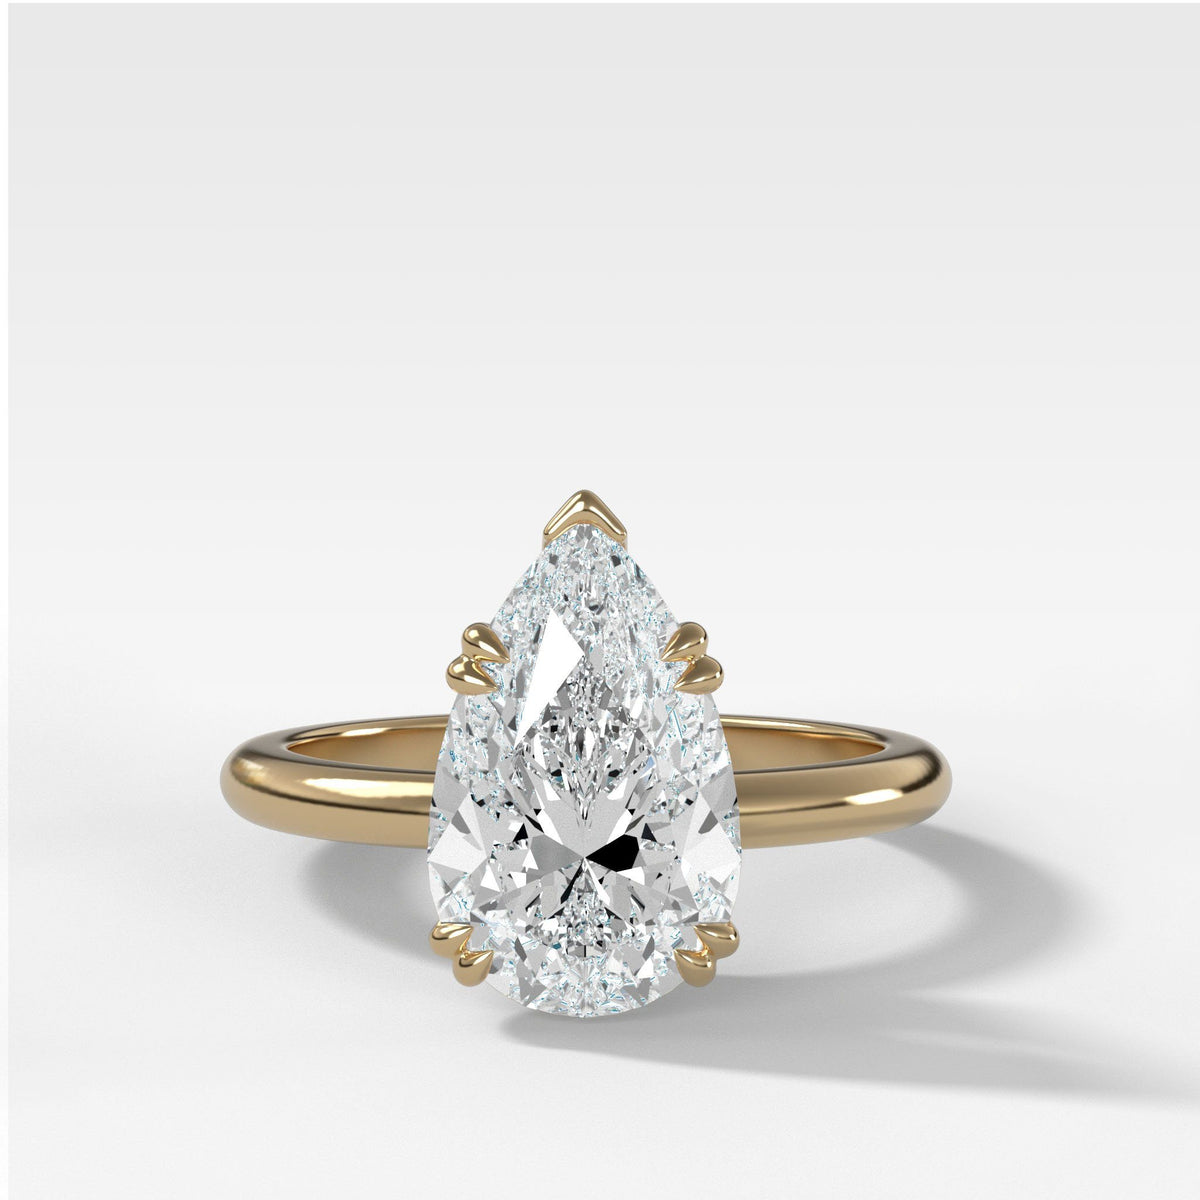 Signature Cathedral Solitaire With Pear Cut in Yellow Gold by Good Stone